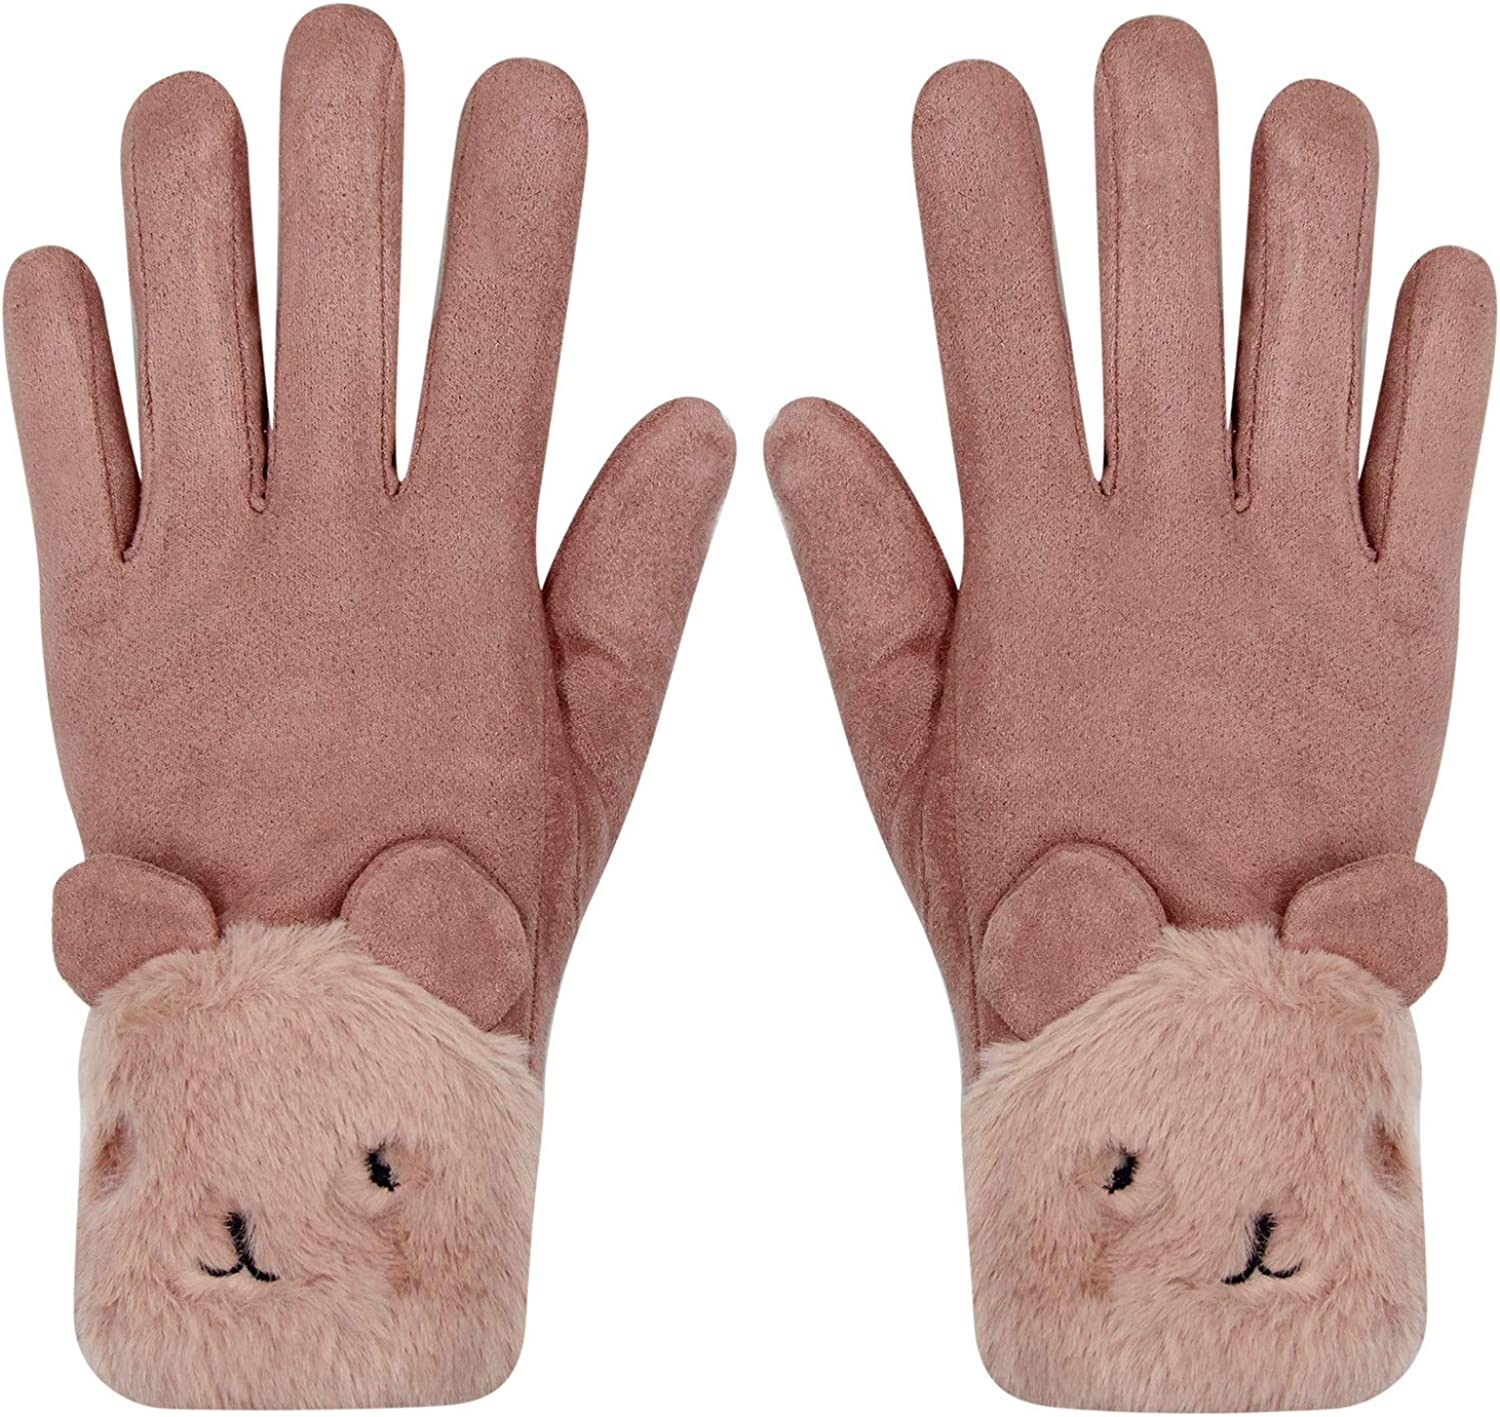 At the price of surprise Women Suede Touchscreen Cold Weather Lin Gloves Spring new work one after another Fleece Warm Cute